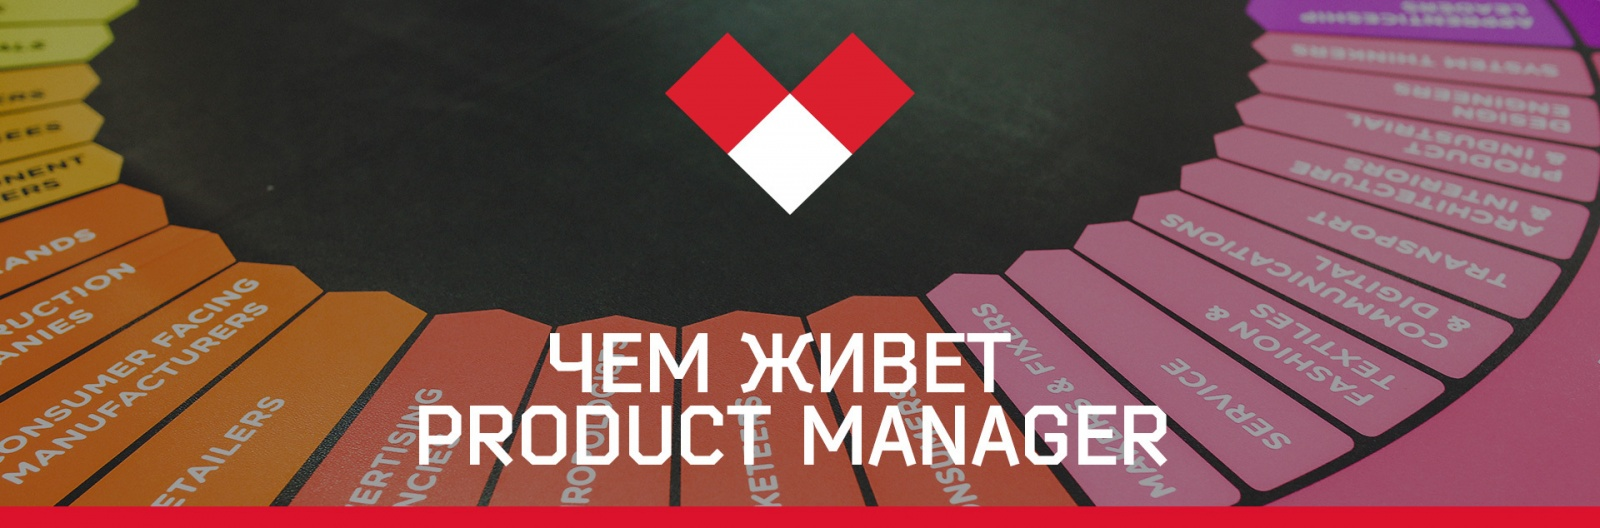 Чем живет Product Manager - 1